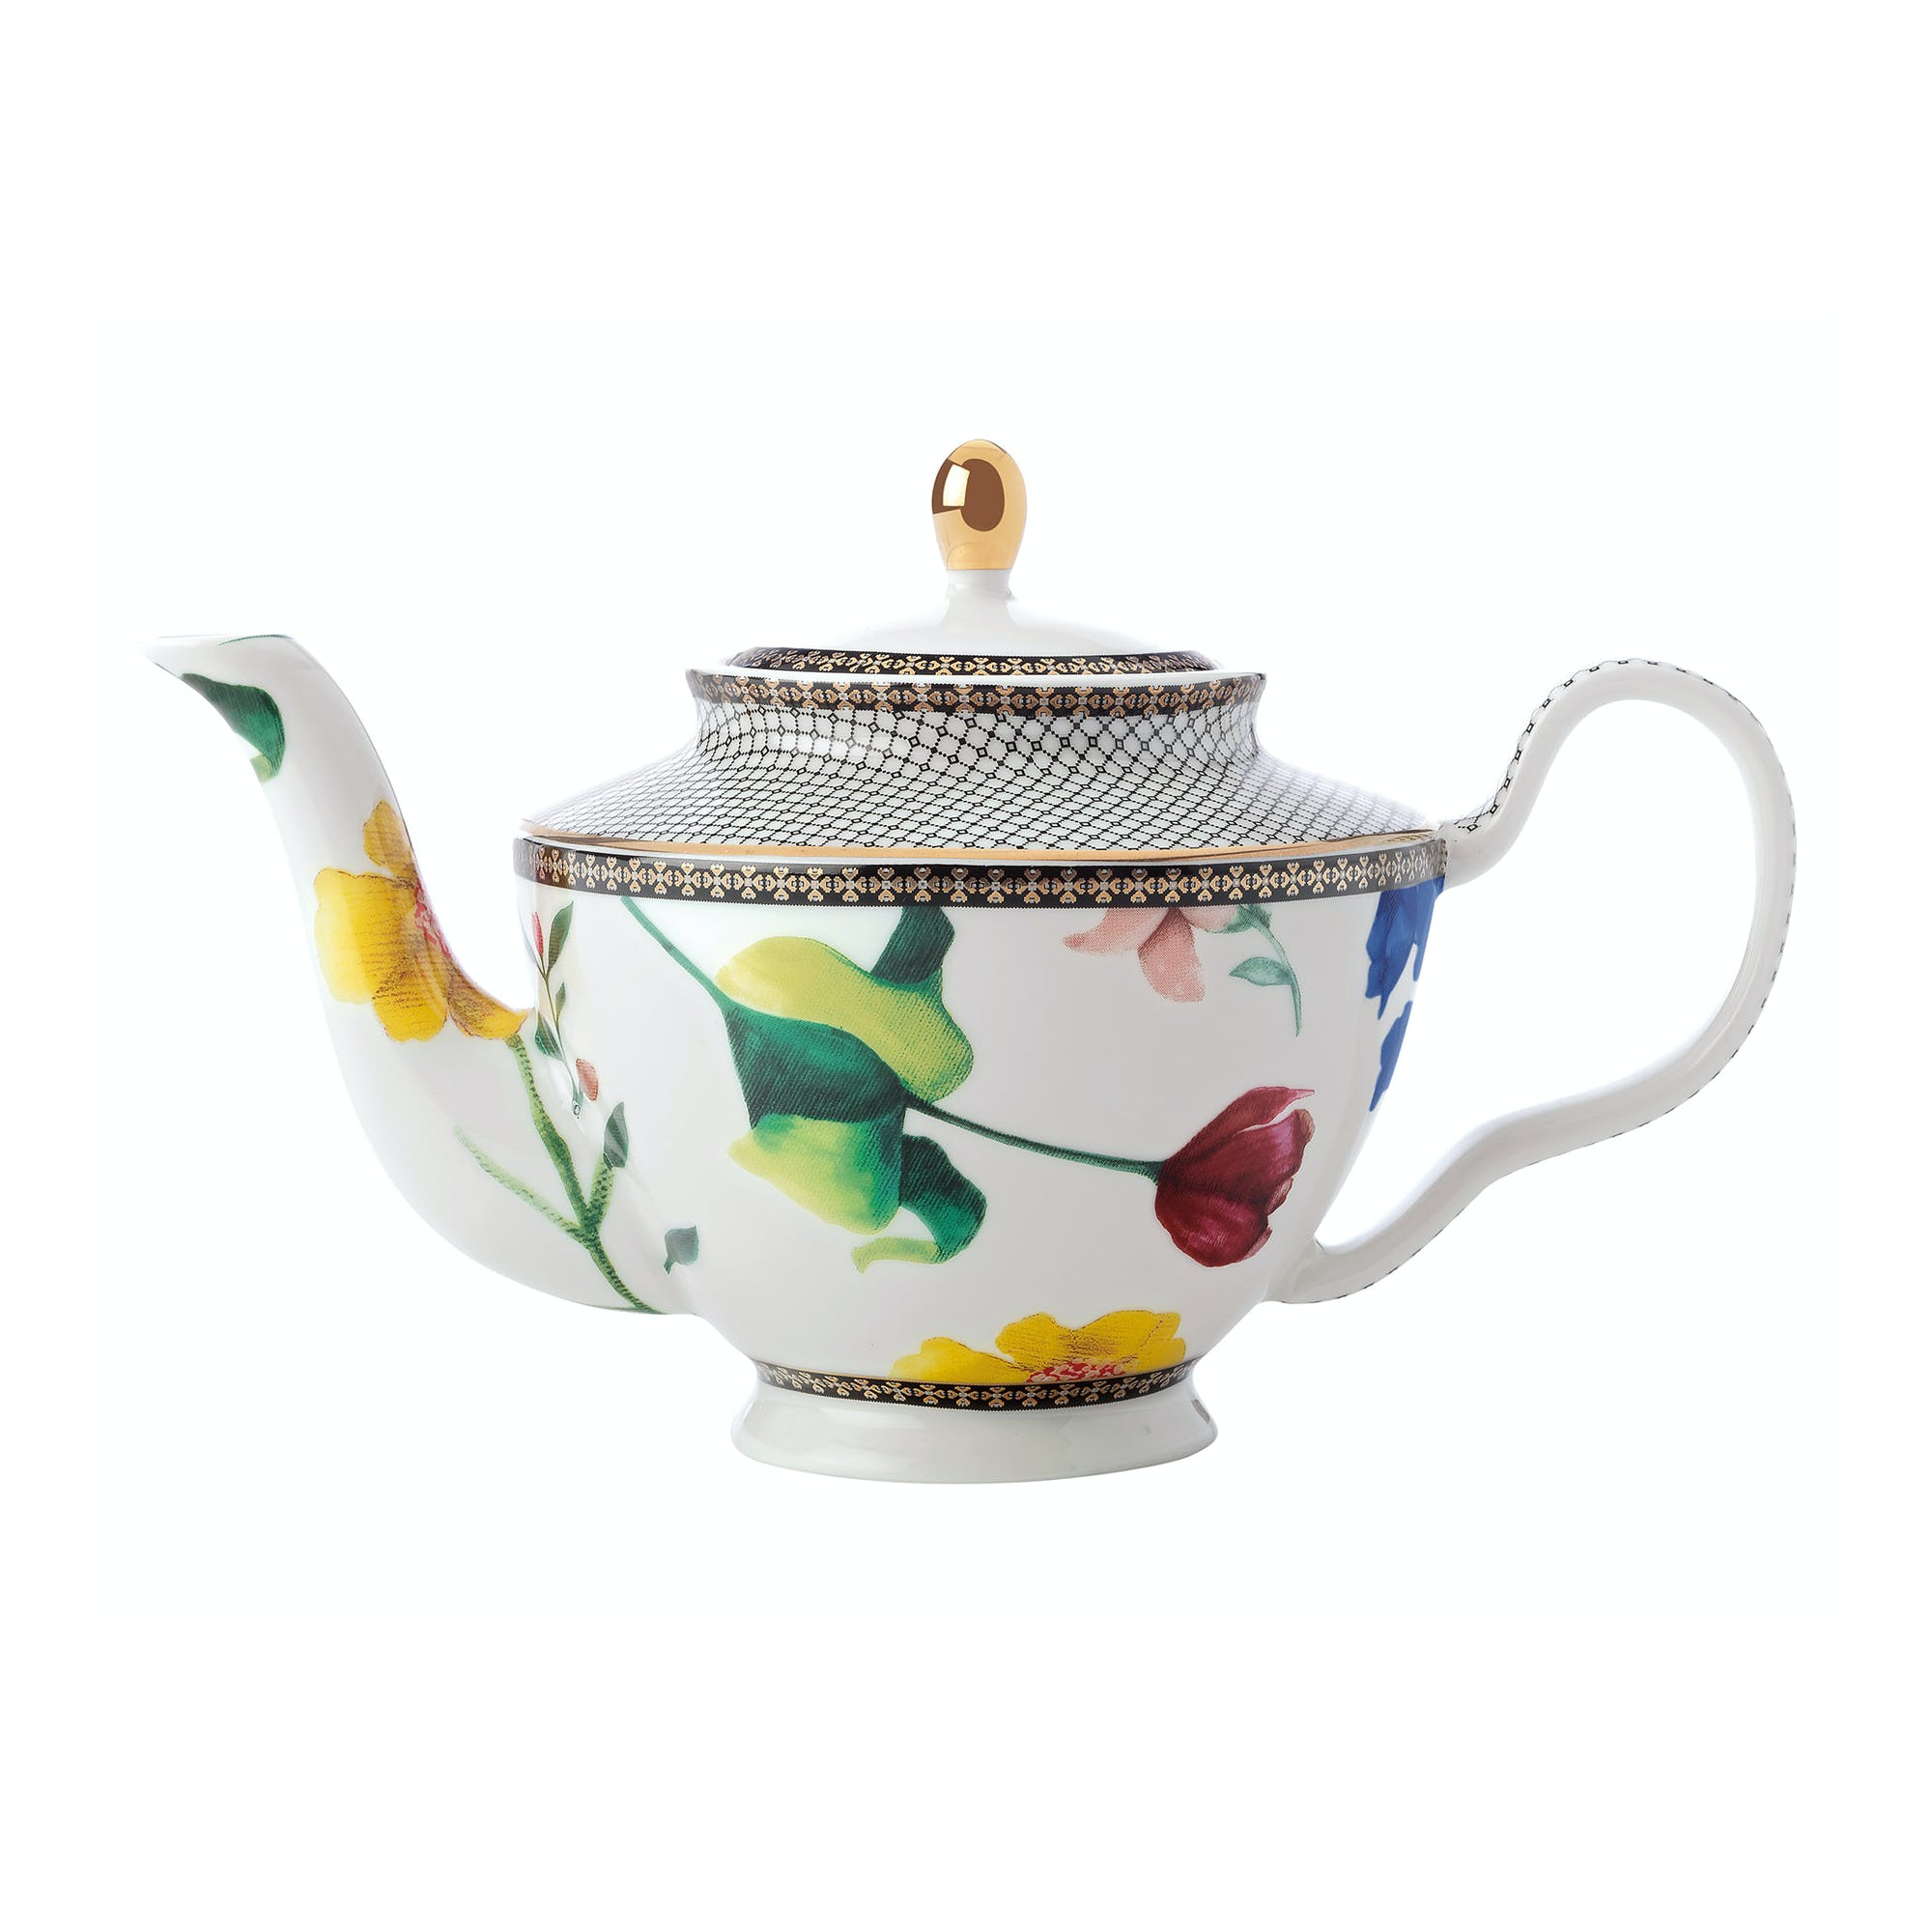 Teas & C's 500ml Teapot with Infuser, White, S